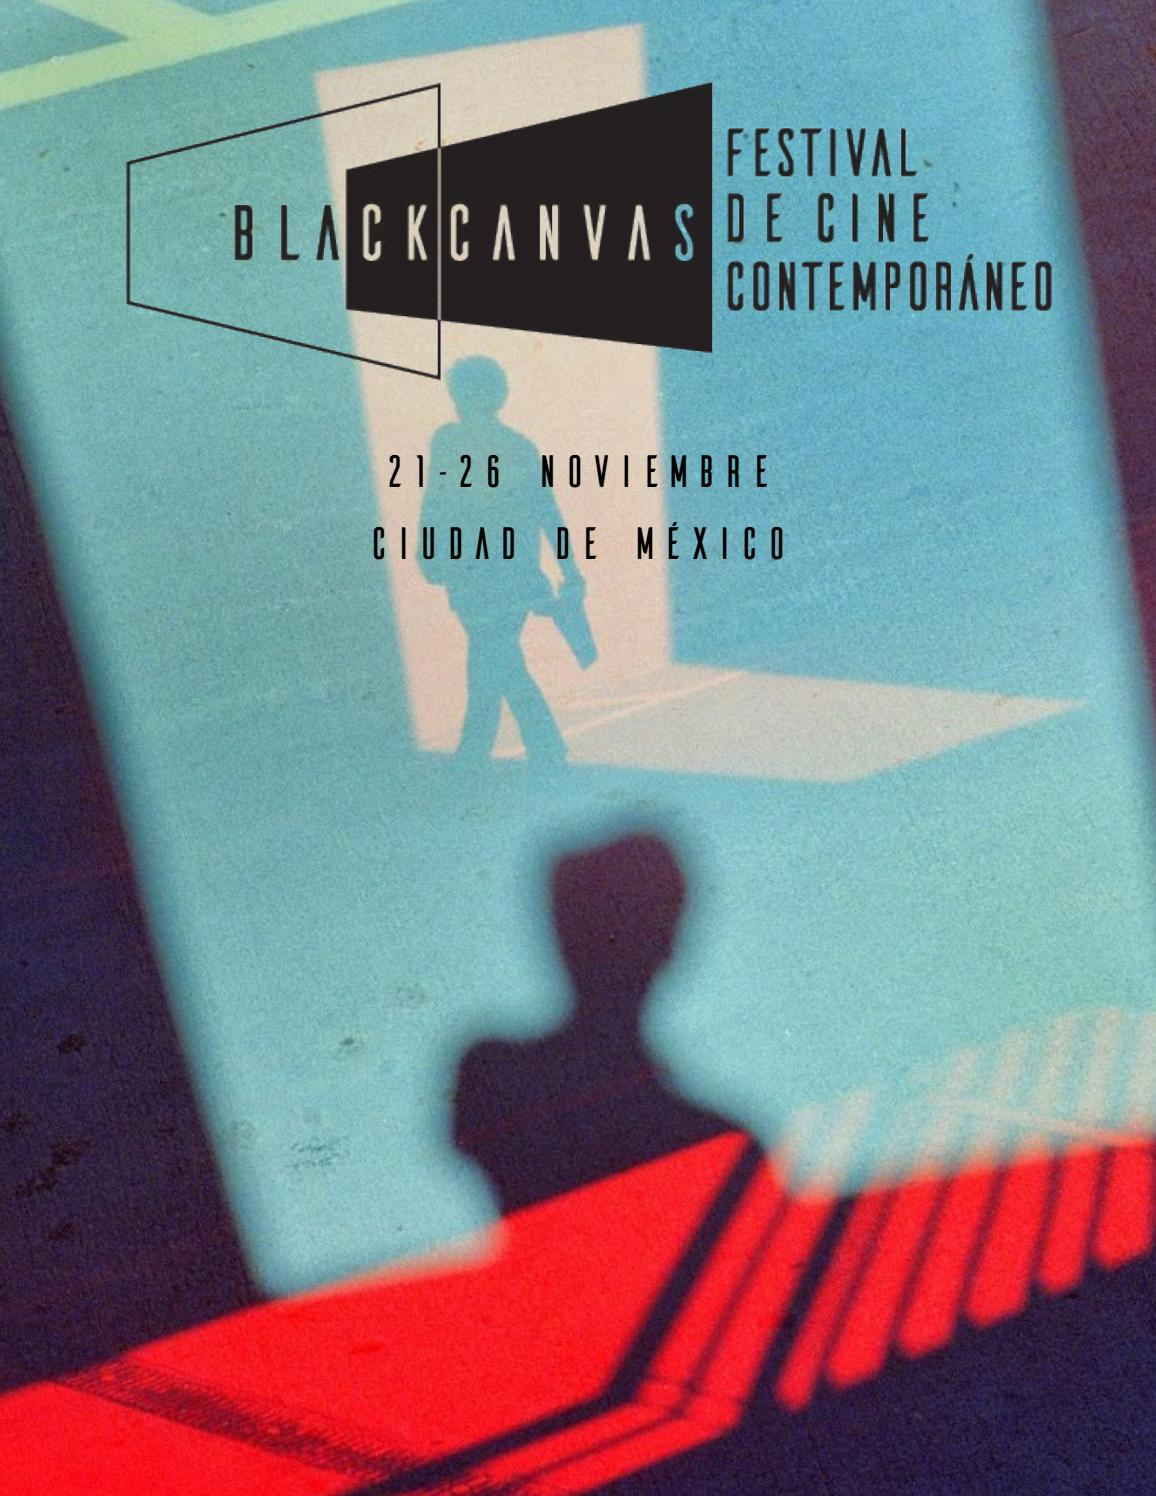 Blackcanvas catalogo nov 2017 web by Black Canvas FCC - issuu